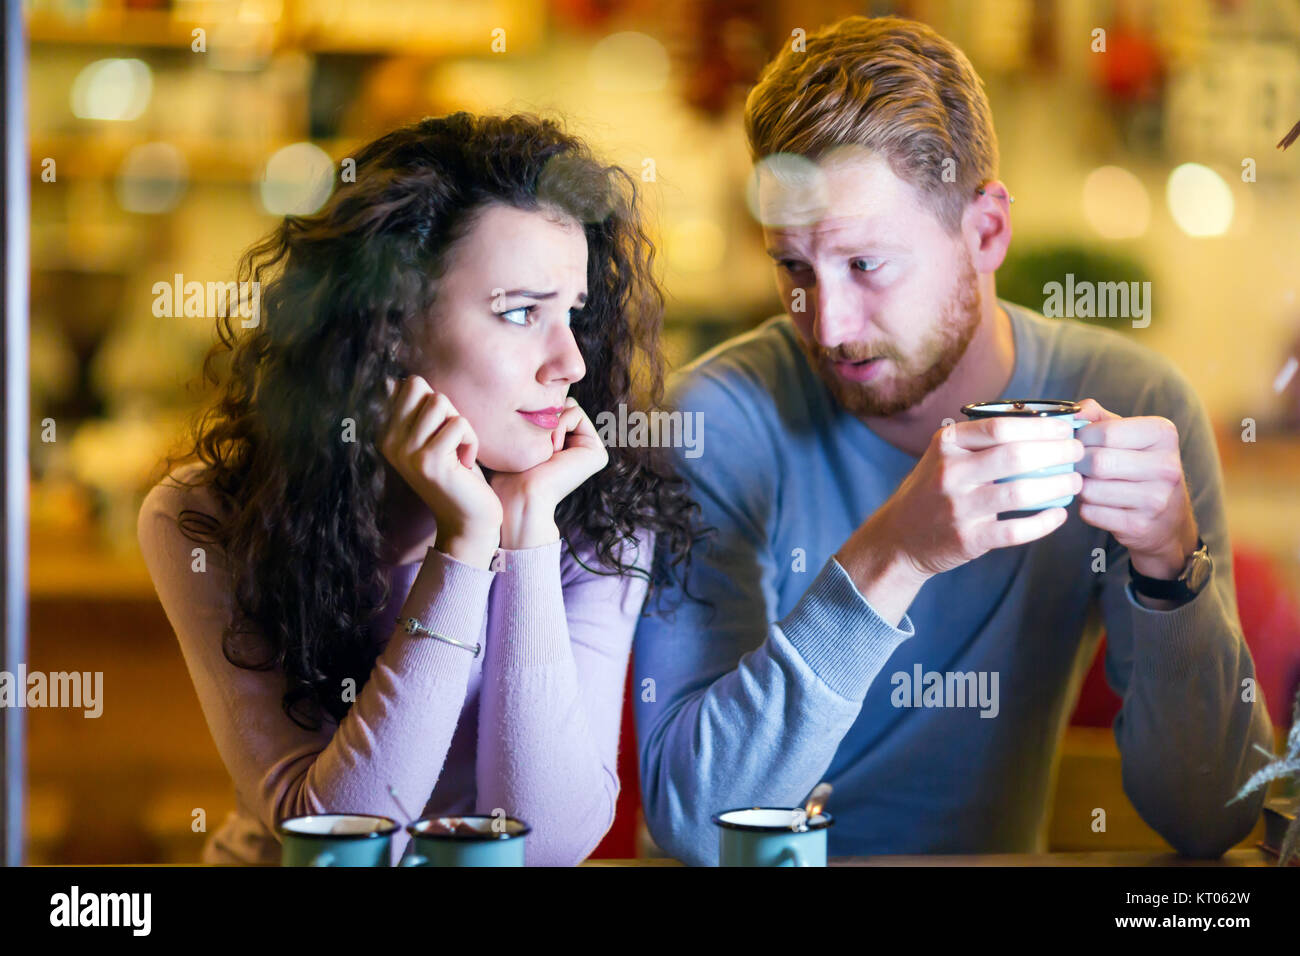 Young attractive couple having problems on date - Stock Image